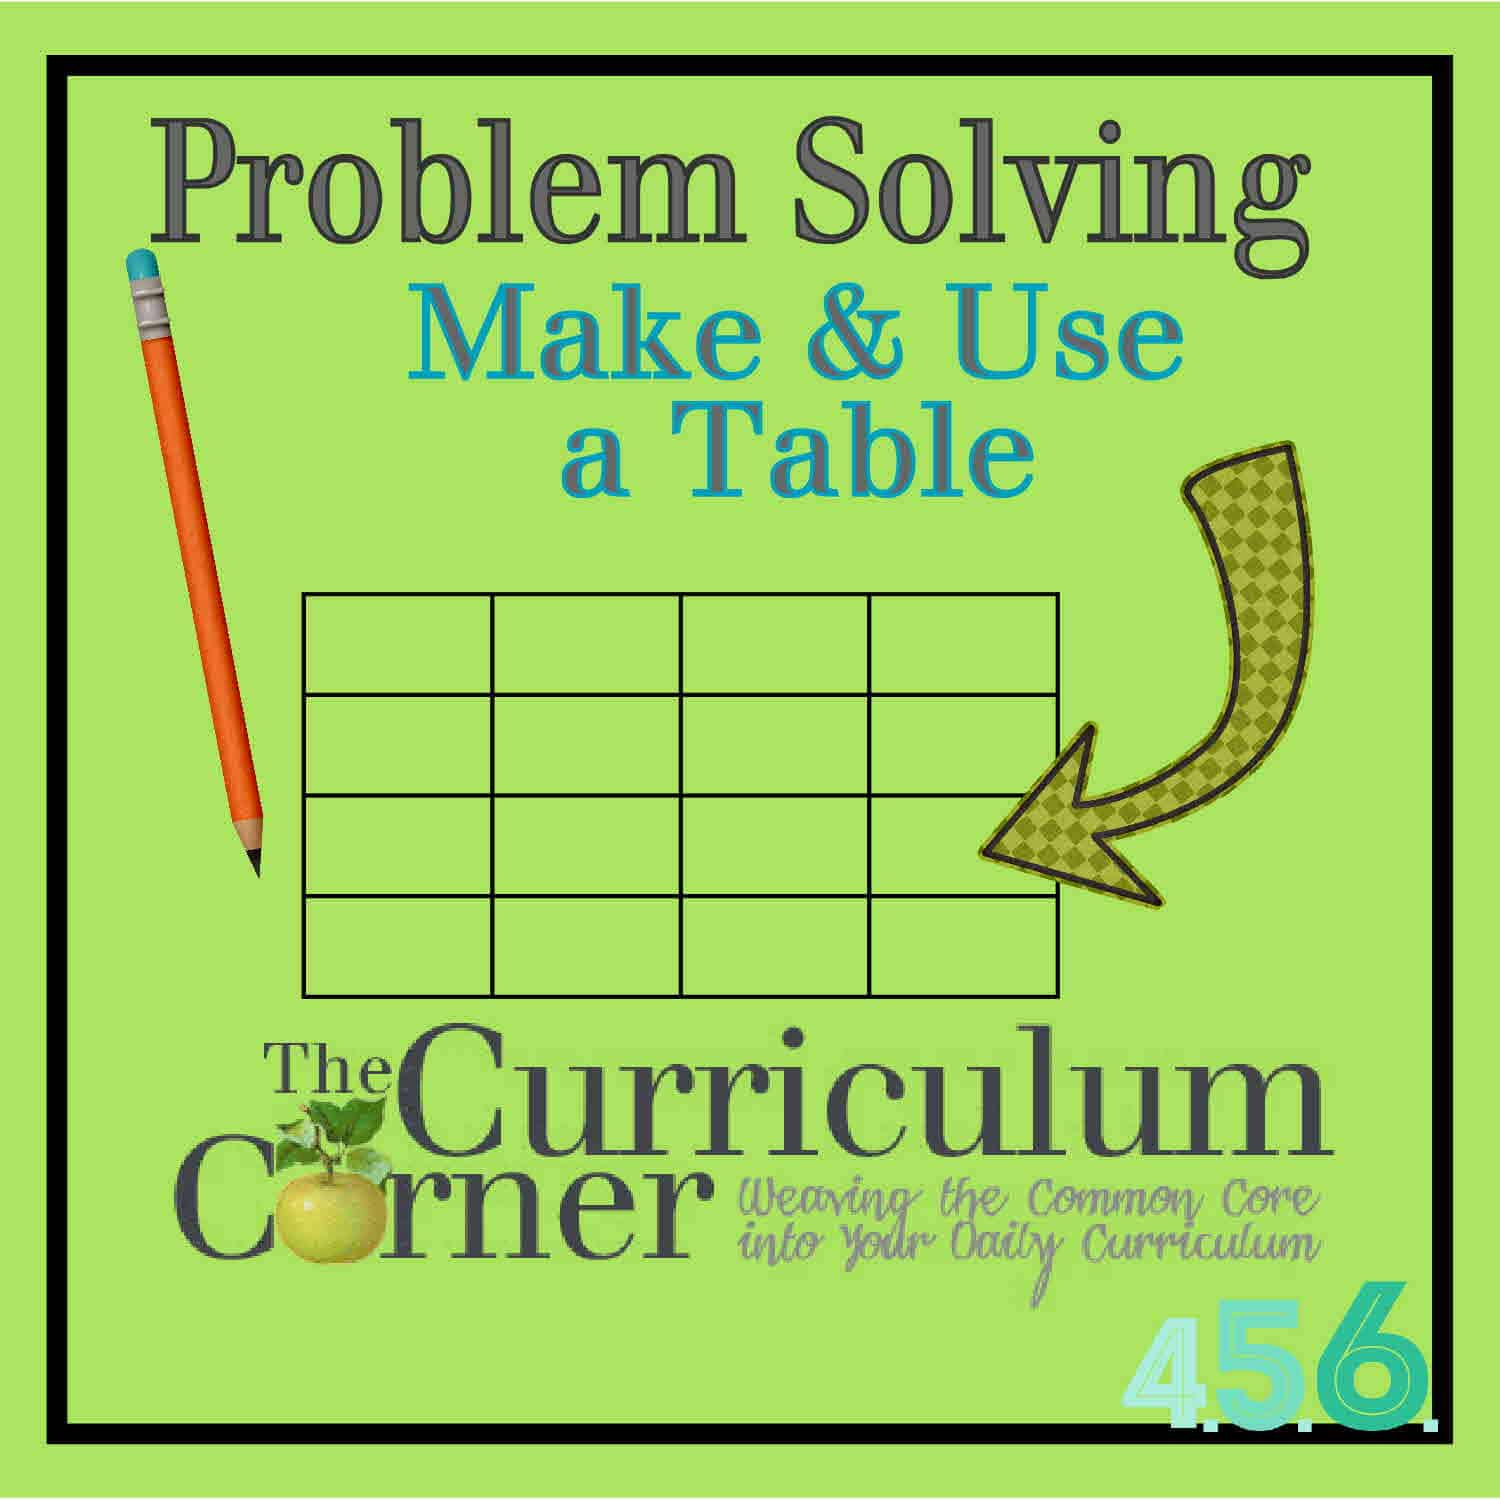 Problem solving strategy make a table